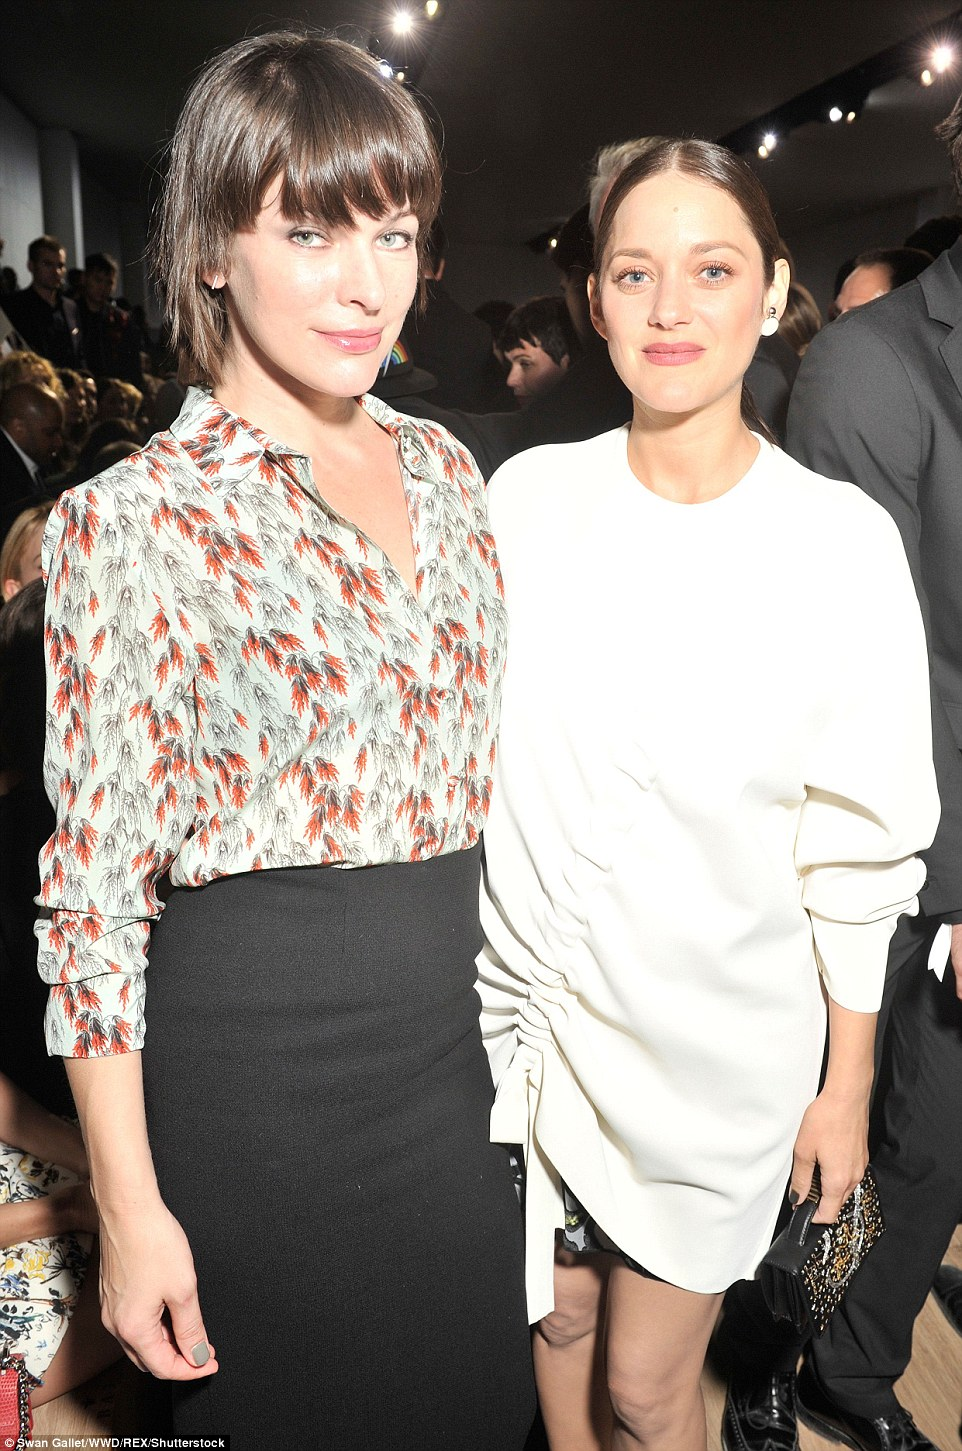 Stars united: She posed for a shot with fellow actressMilla Jovovich at the hot ticket event